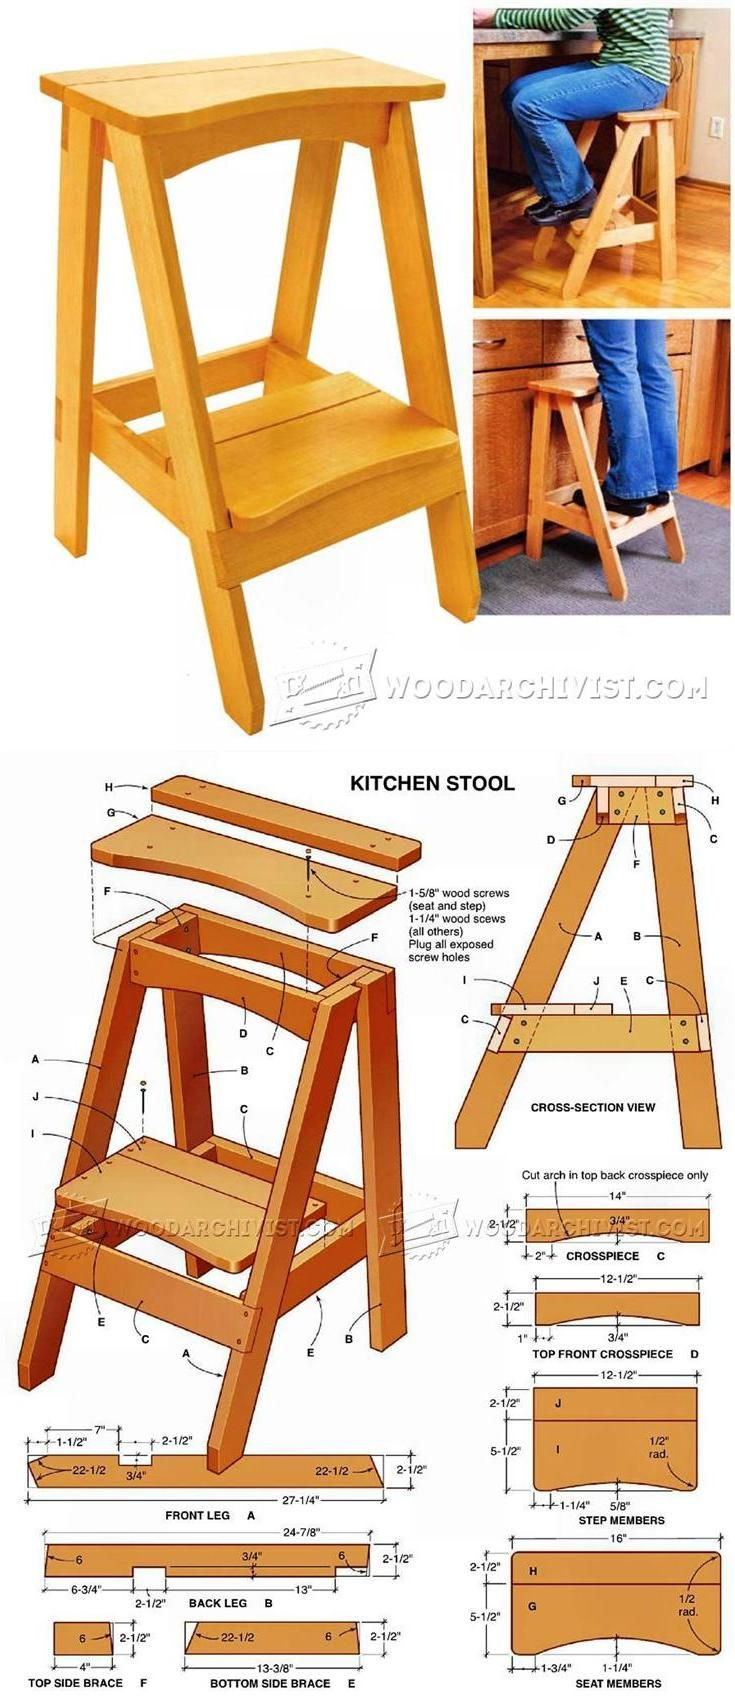 Kitchen Step Stool Plans - Furniture Plans and Projects | WoodArchivist.com  sc 1 st  Pinterest : 2 step folding plastic step stool - islam-shia.org